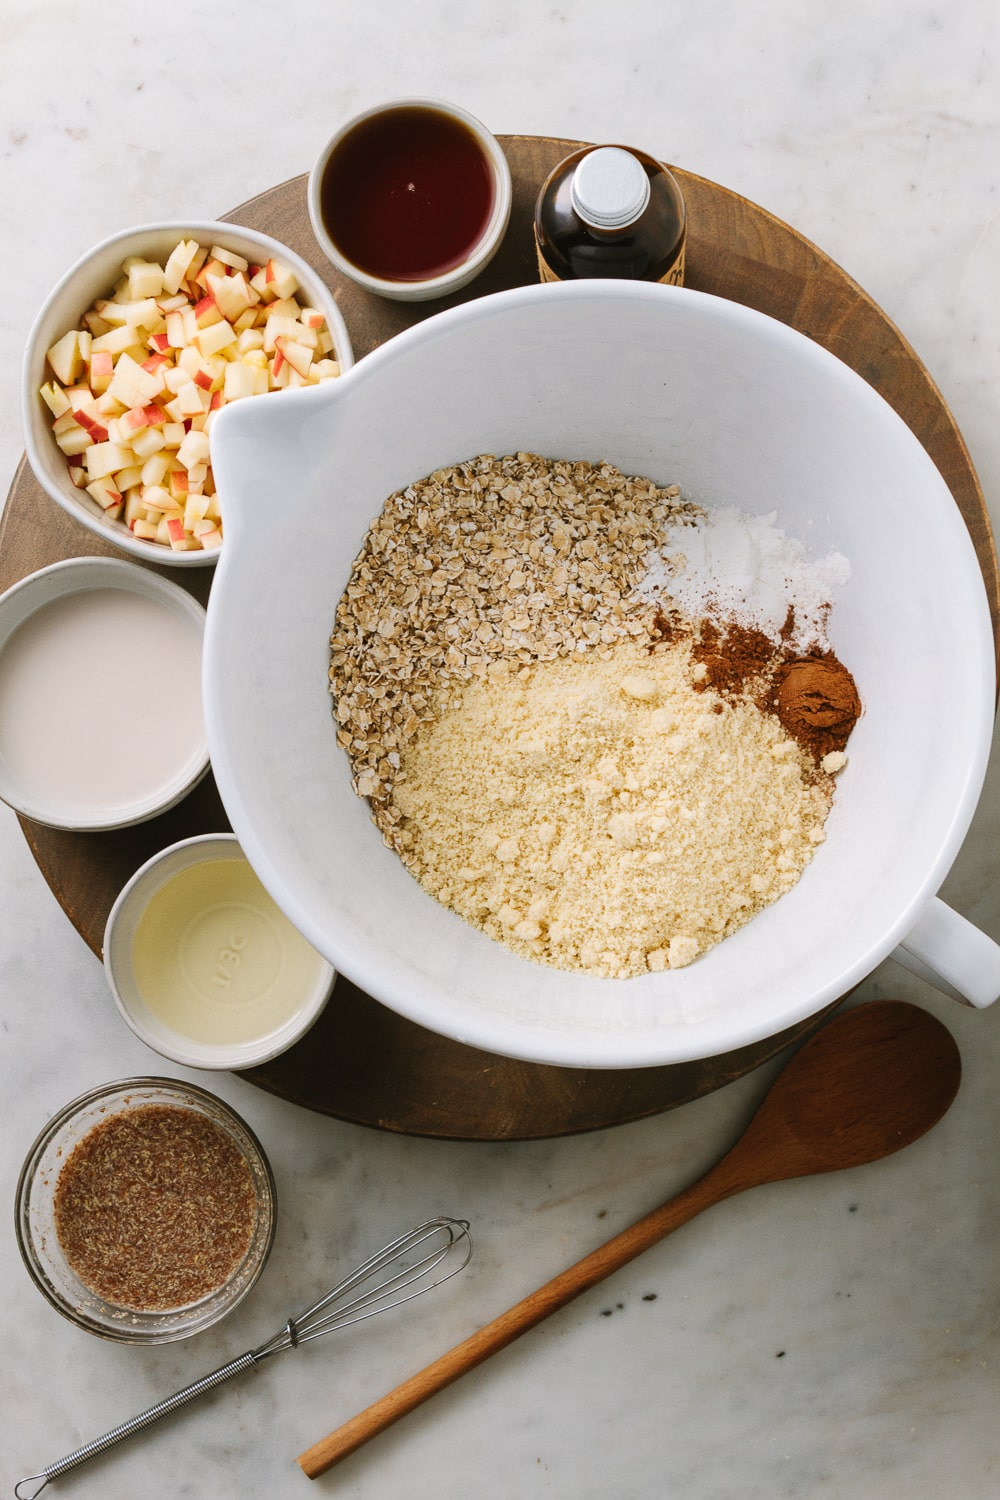 top down view of a mixing bowl filled with almond flour, oats, baking powder, salt and cinnamon, surrounded by small bowls filled with finely diced apples, plant milk, pure maple syrup, oil, flax egg, and bottle of vanilla on a circular brown wooden cutting board